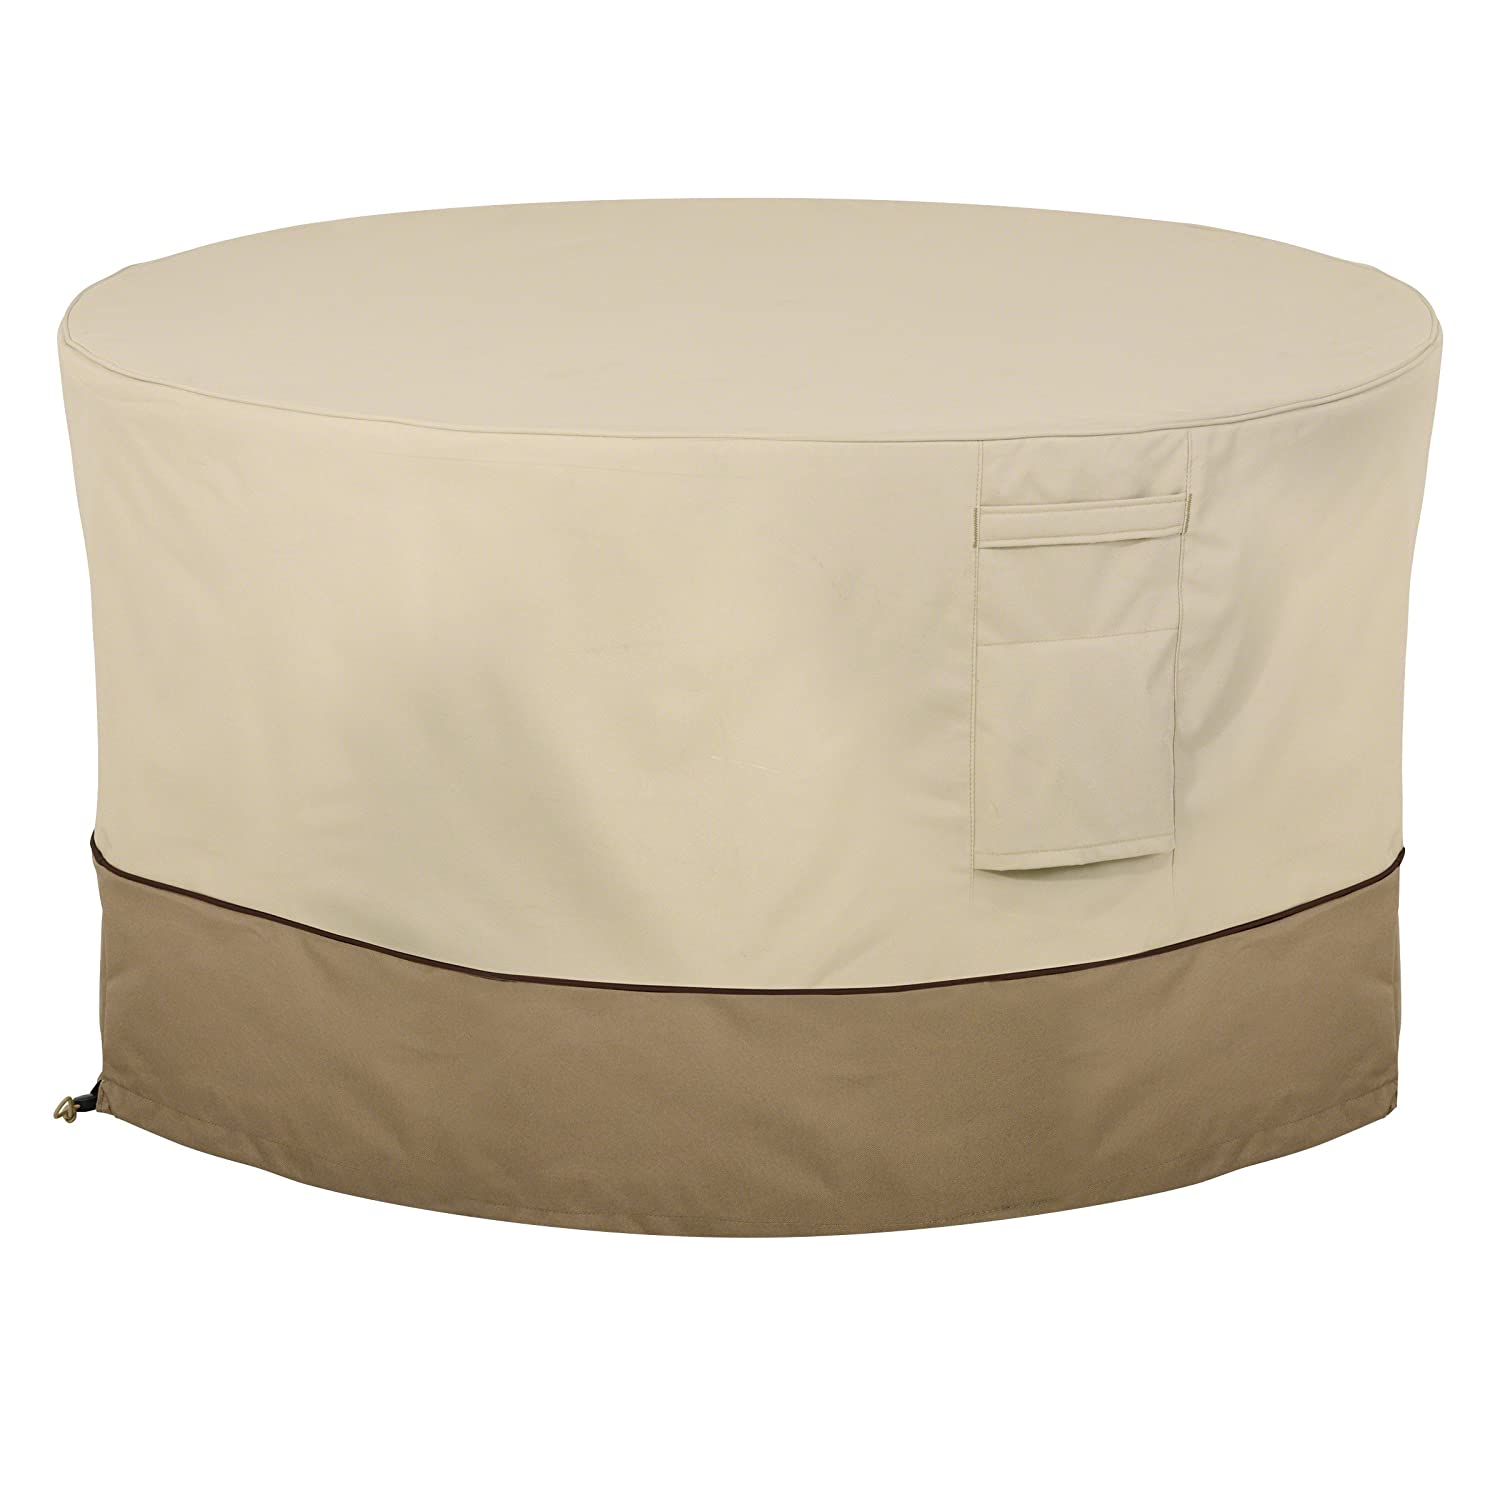 Charmant Classic Accessories 55 465 011501 00 Veranda Round Fire Pit/Table Cover